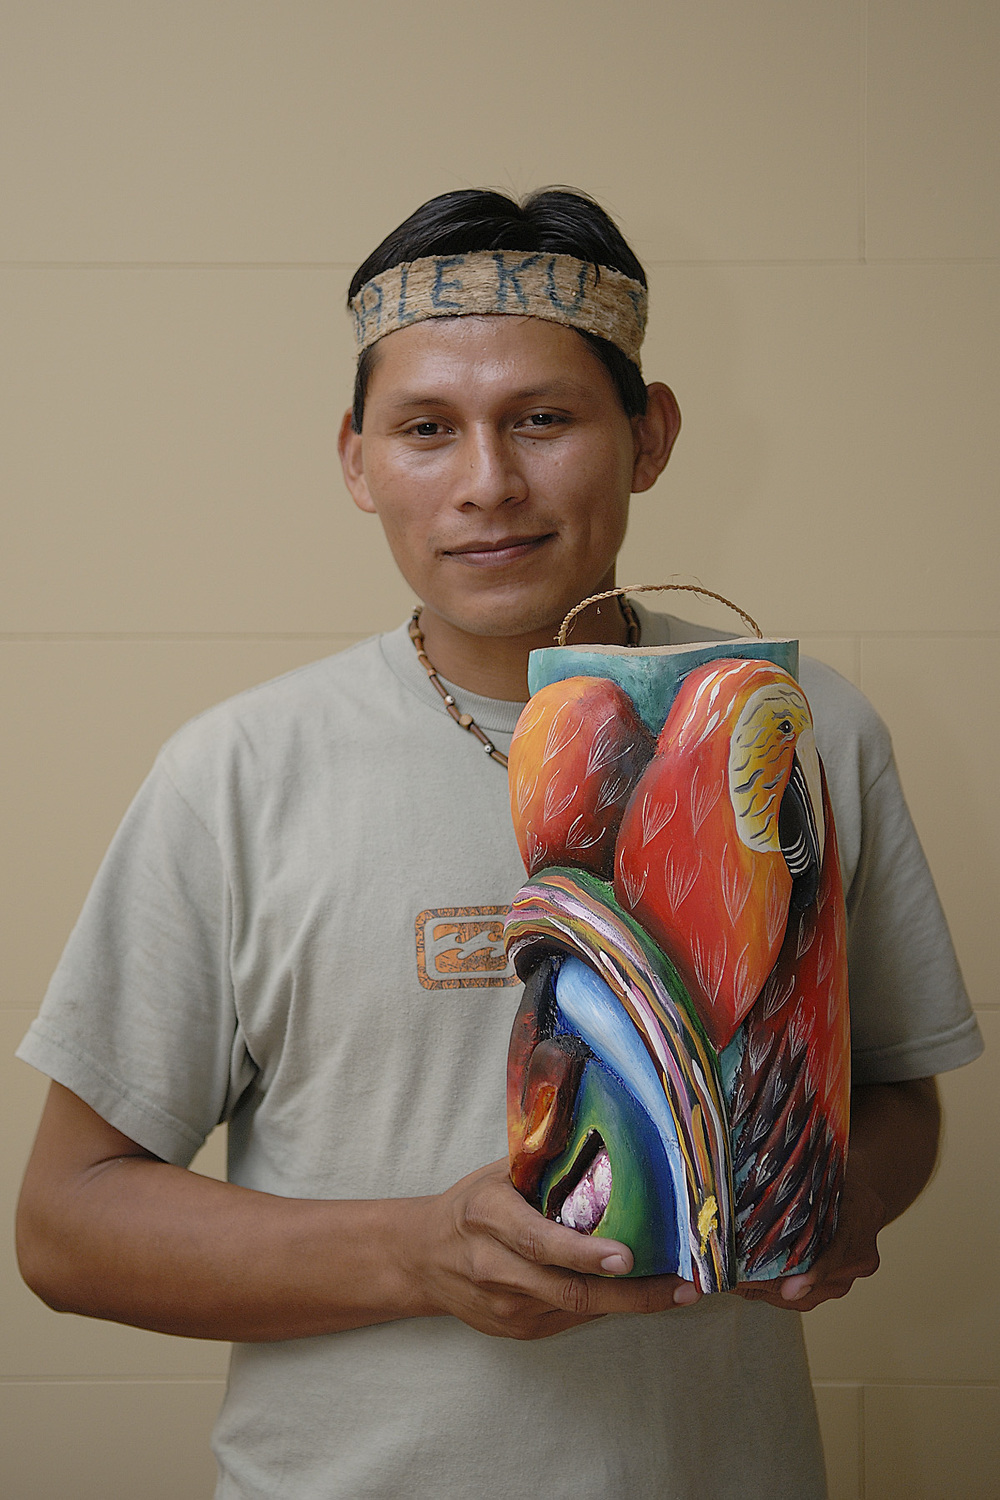 A native Costa Rican with his painted art work.